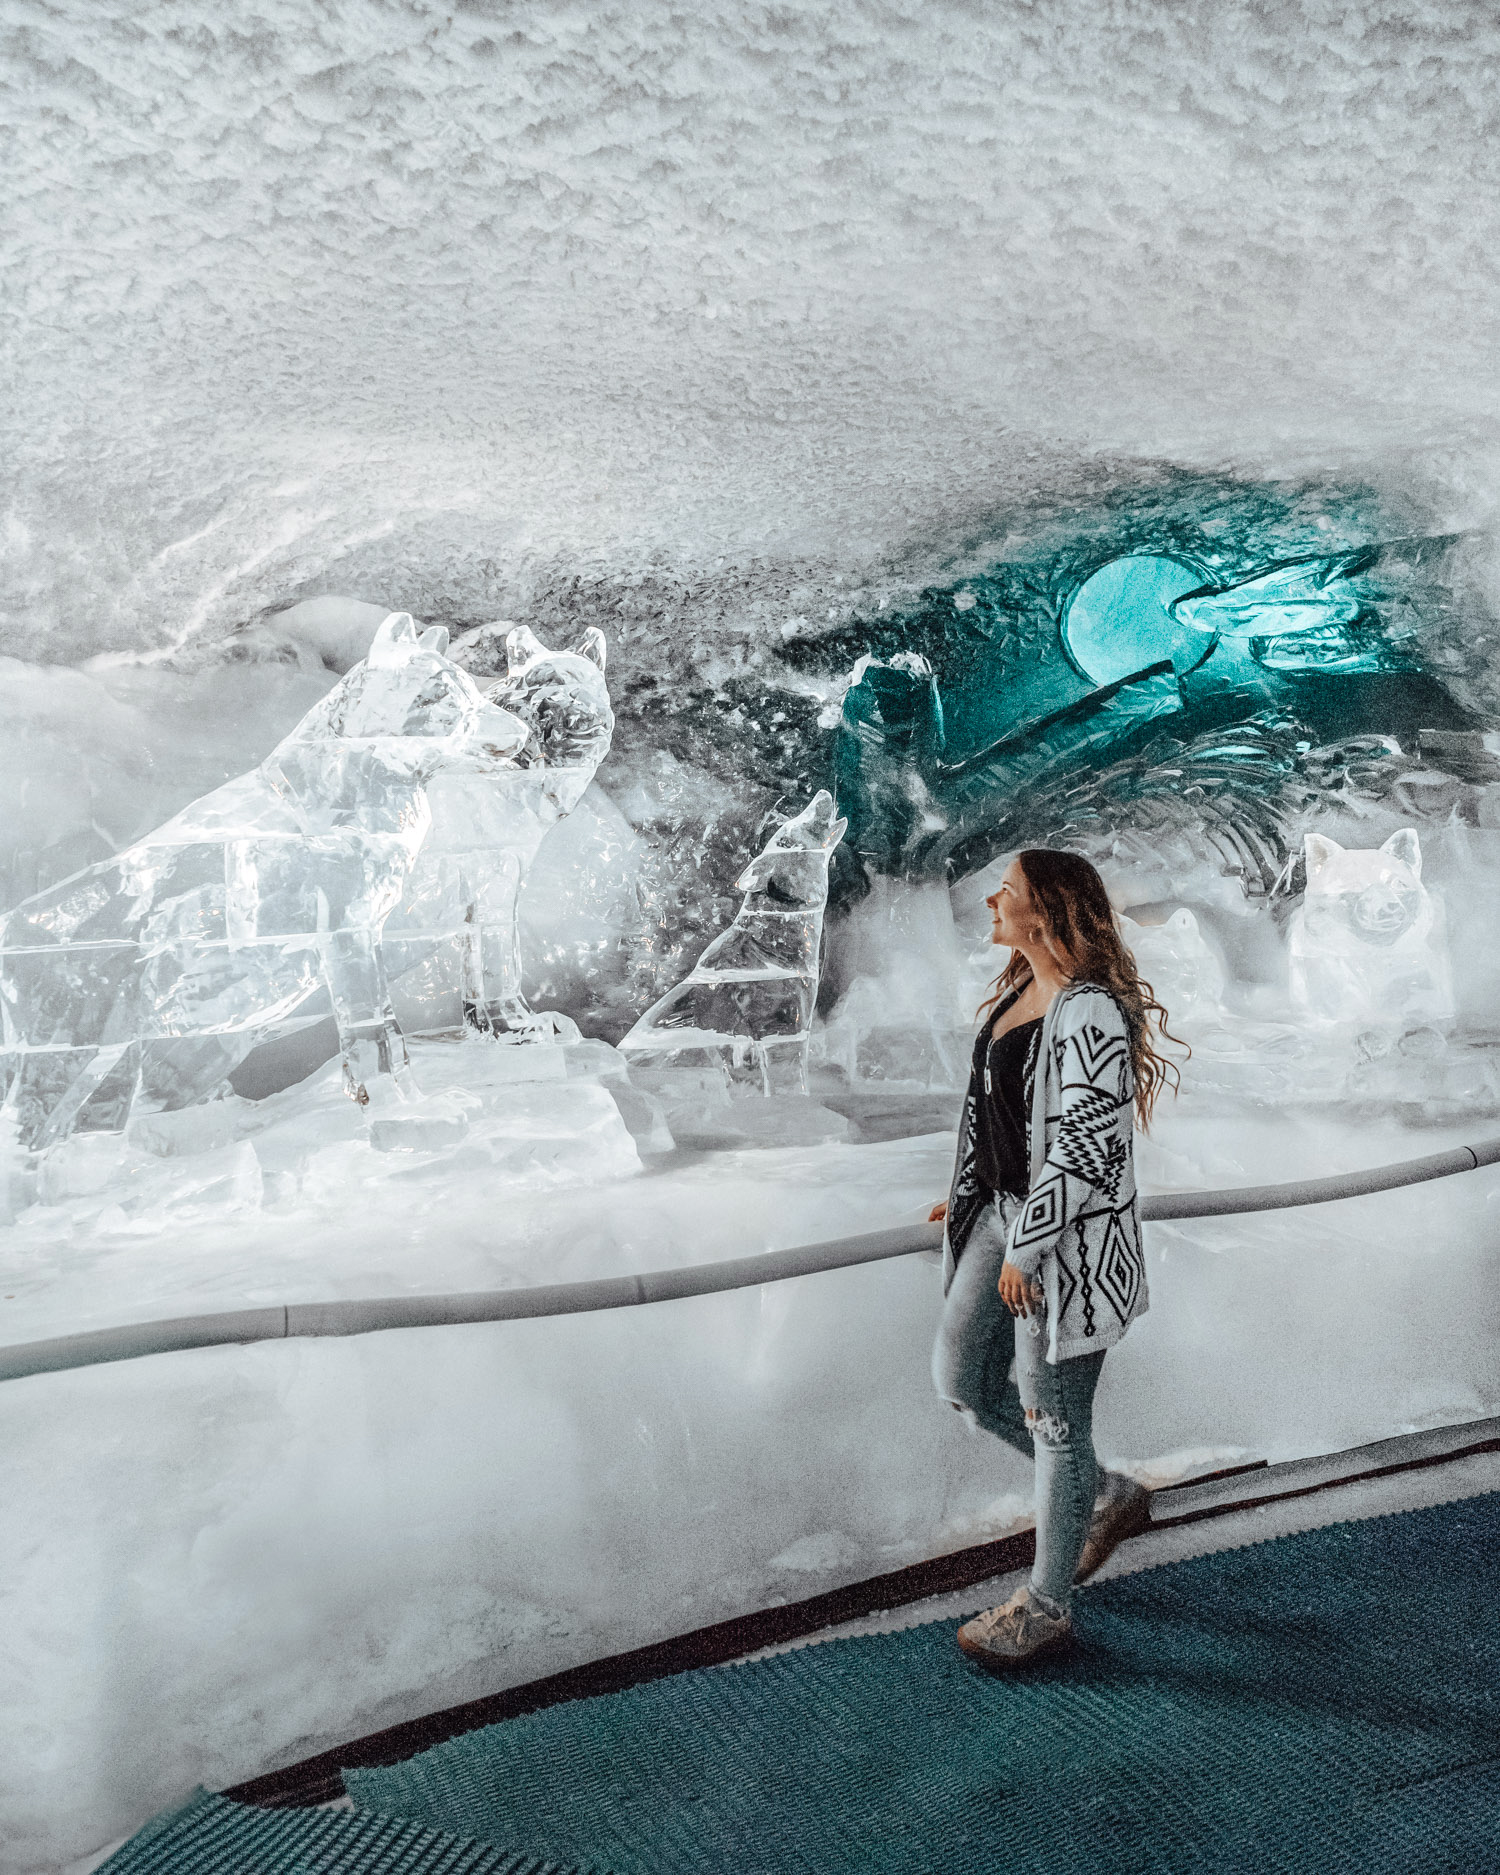 Glacier Palace | Things to Do in Zermatt, Switzerland